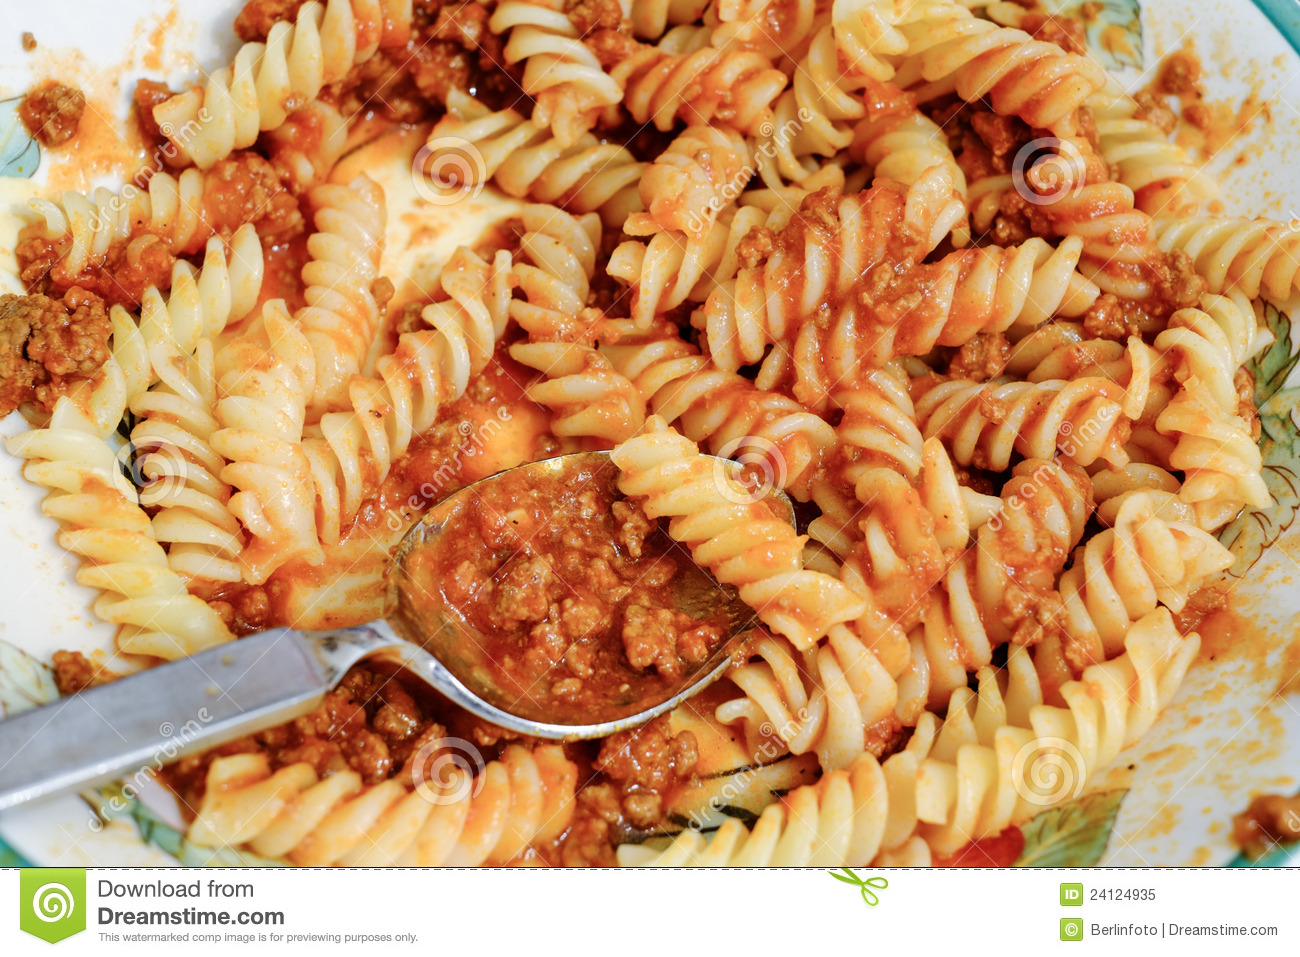 Pasta spirals with bolognese sauce.